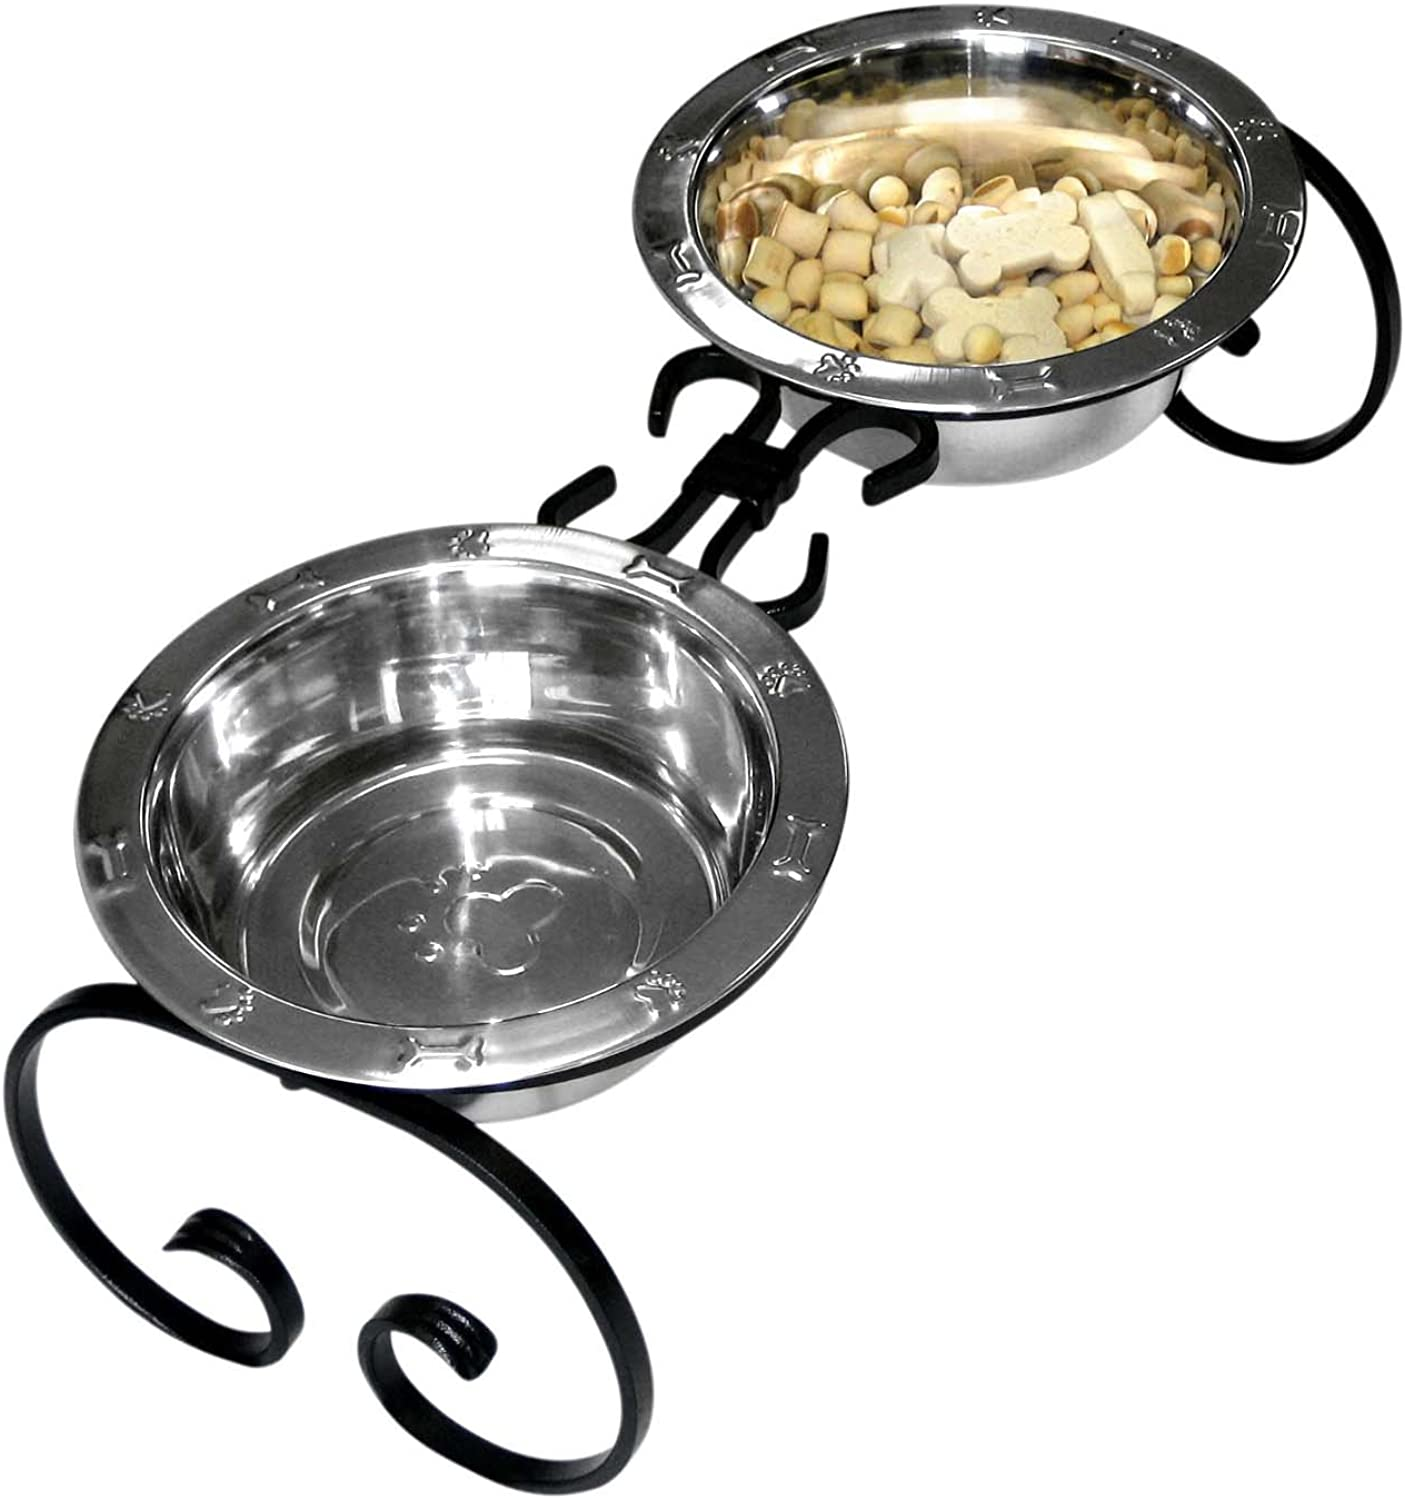 QT Dog Wrought Iron Diner with Stainless Steel, 7Inch, 2Quart, Black